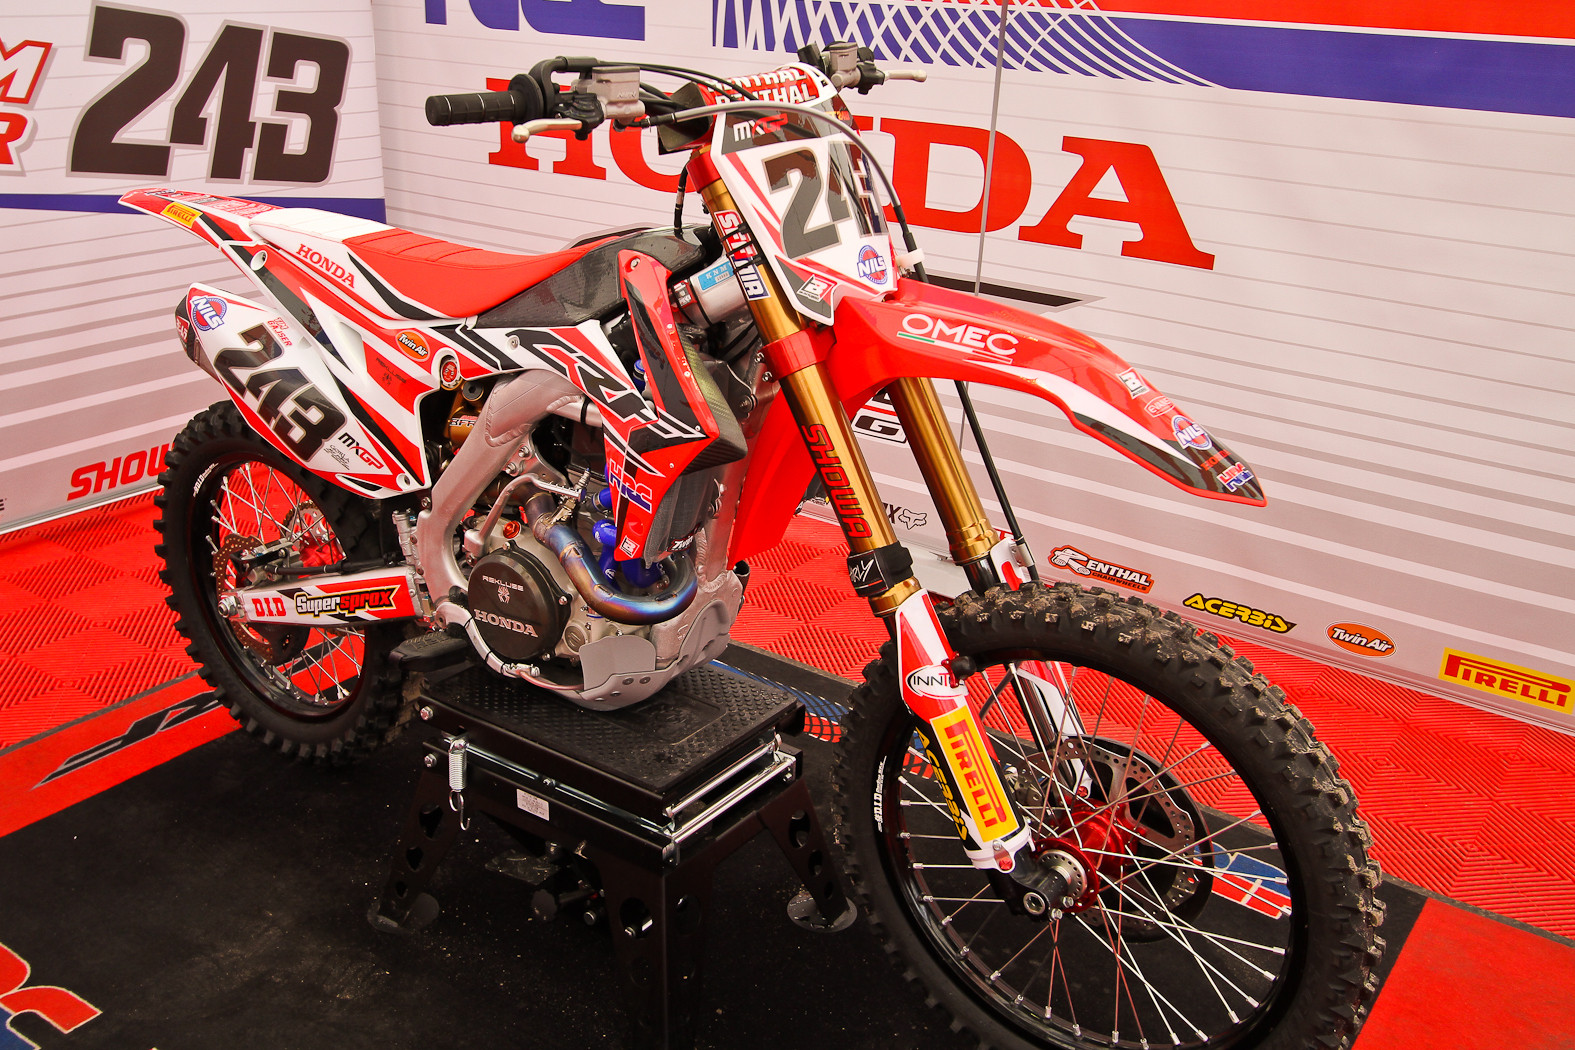 Tim Gajser - In the Pits: MXGP of Europe - Motocross Pictures - Vital MX